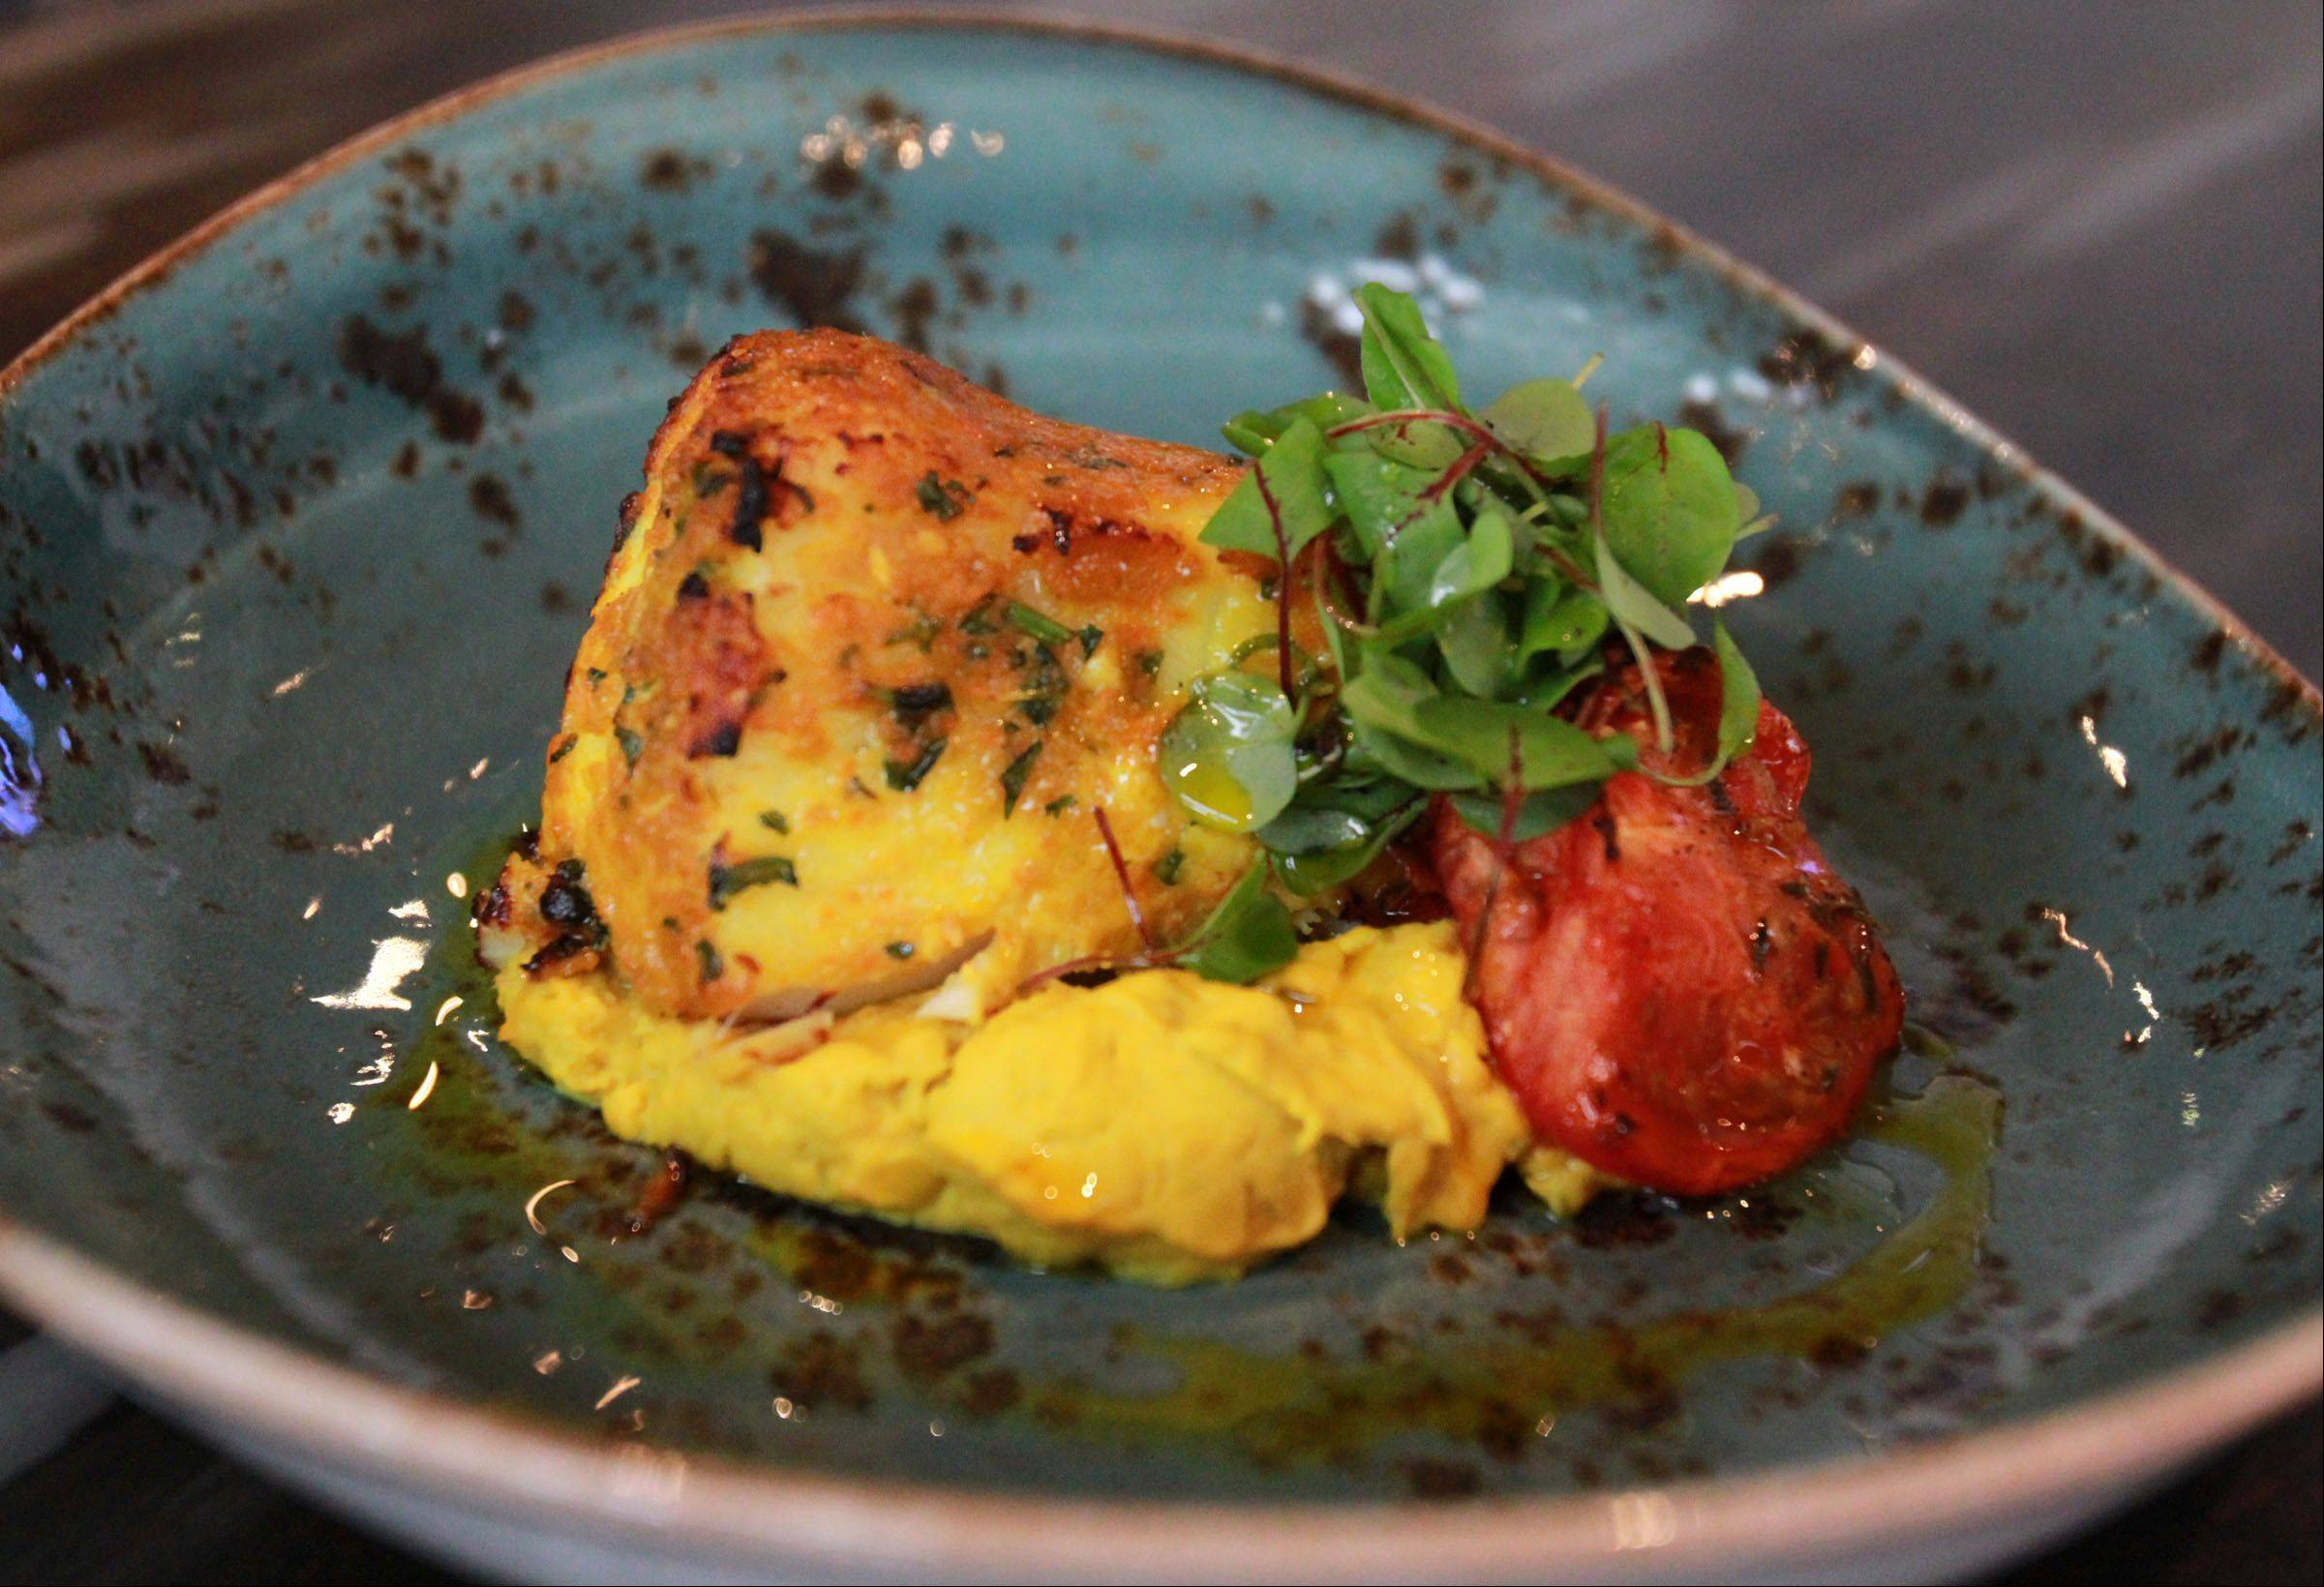 Malay spiced sea bass rests on a bed of curried cauliflower and potato pur�e at e+o Food and Drink at Randhurst Village in Mount Prospect.